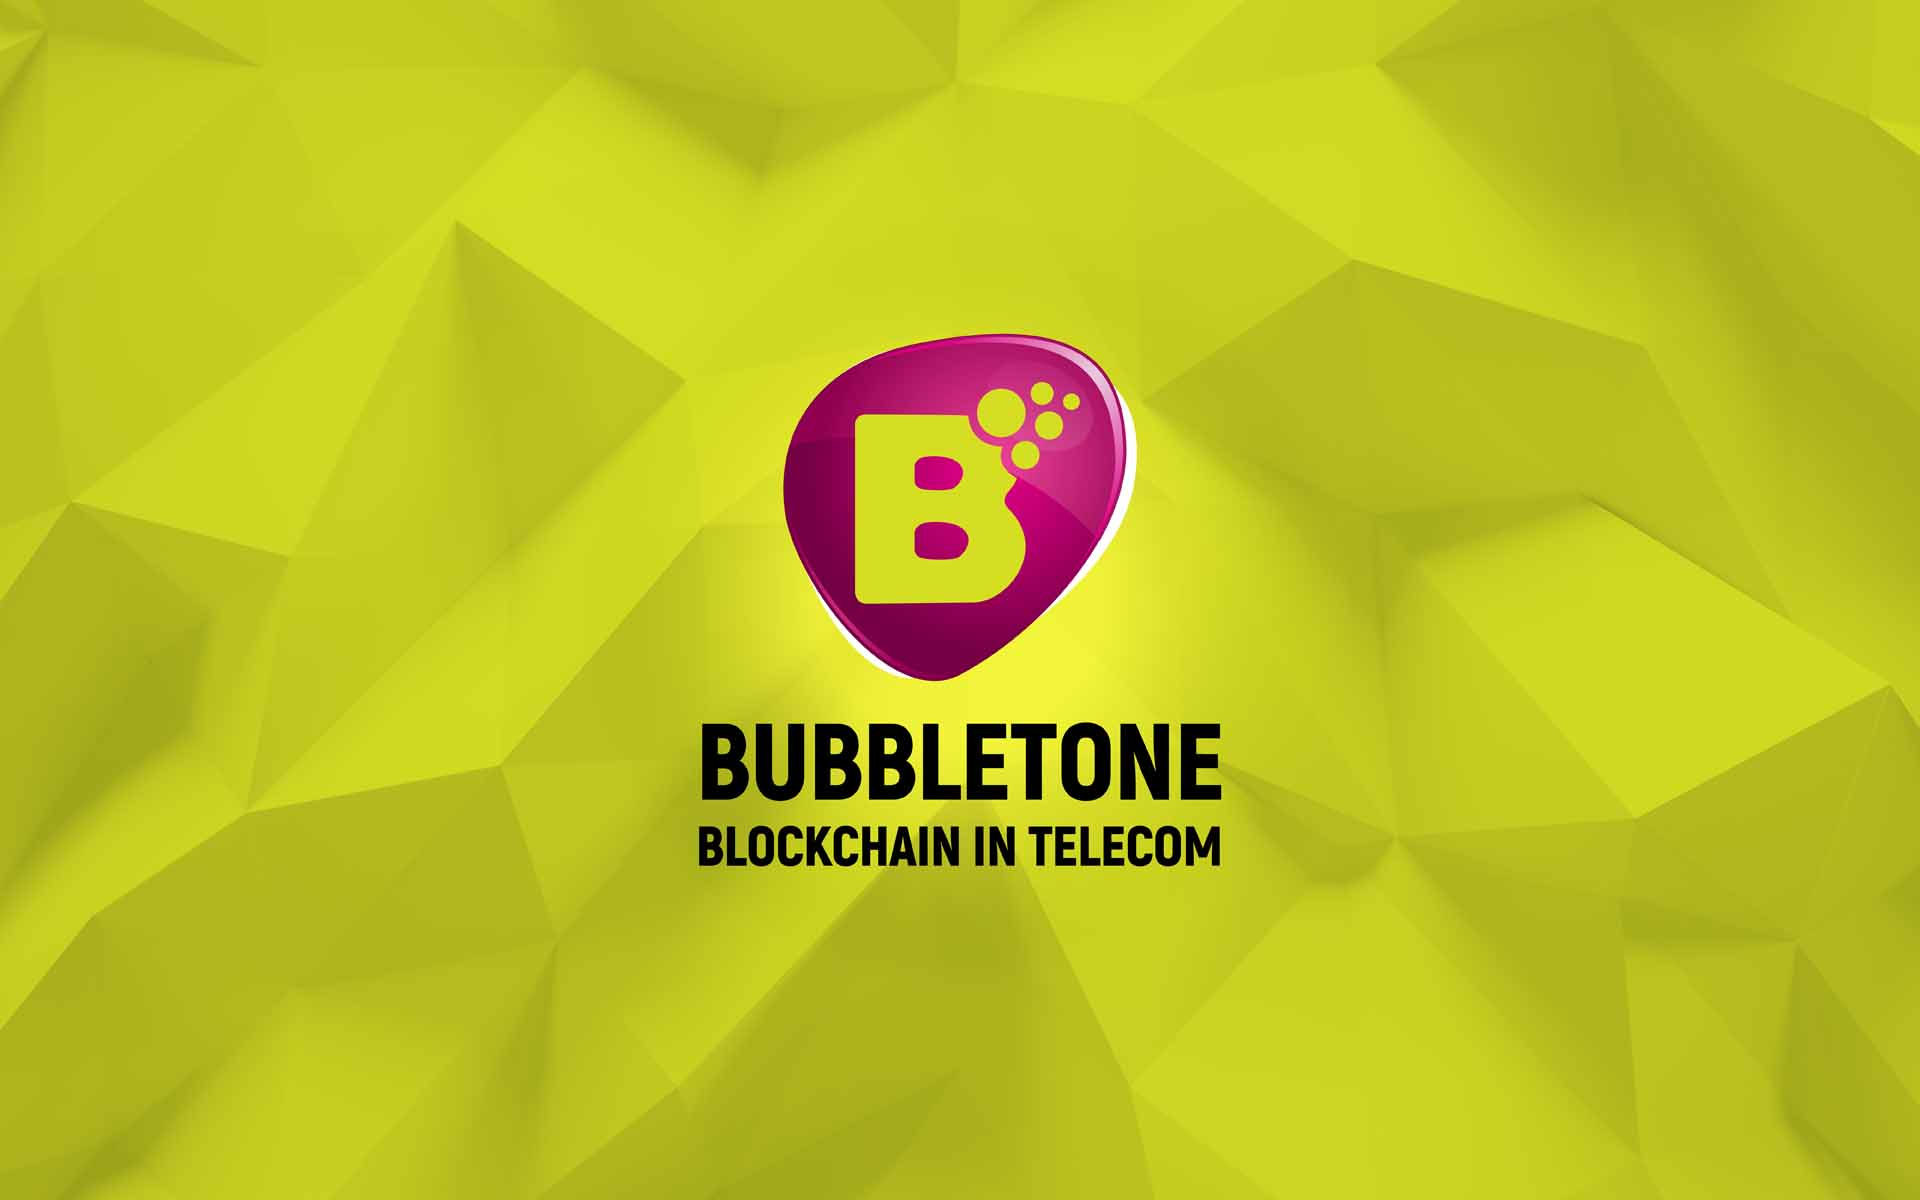 Telecom Startup Bubbletone Offers Tokens with 100% Risk Protection via Dehedge Risk-Hedging Platform